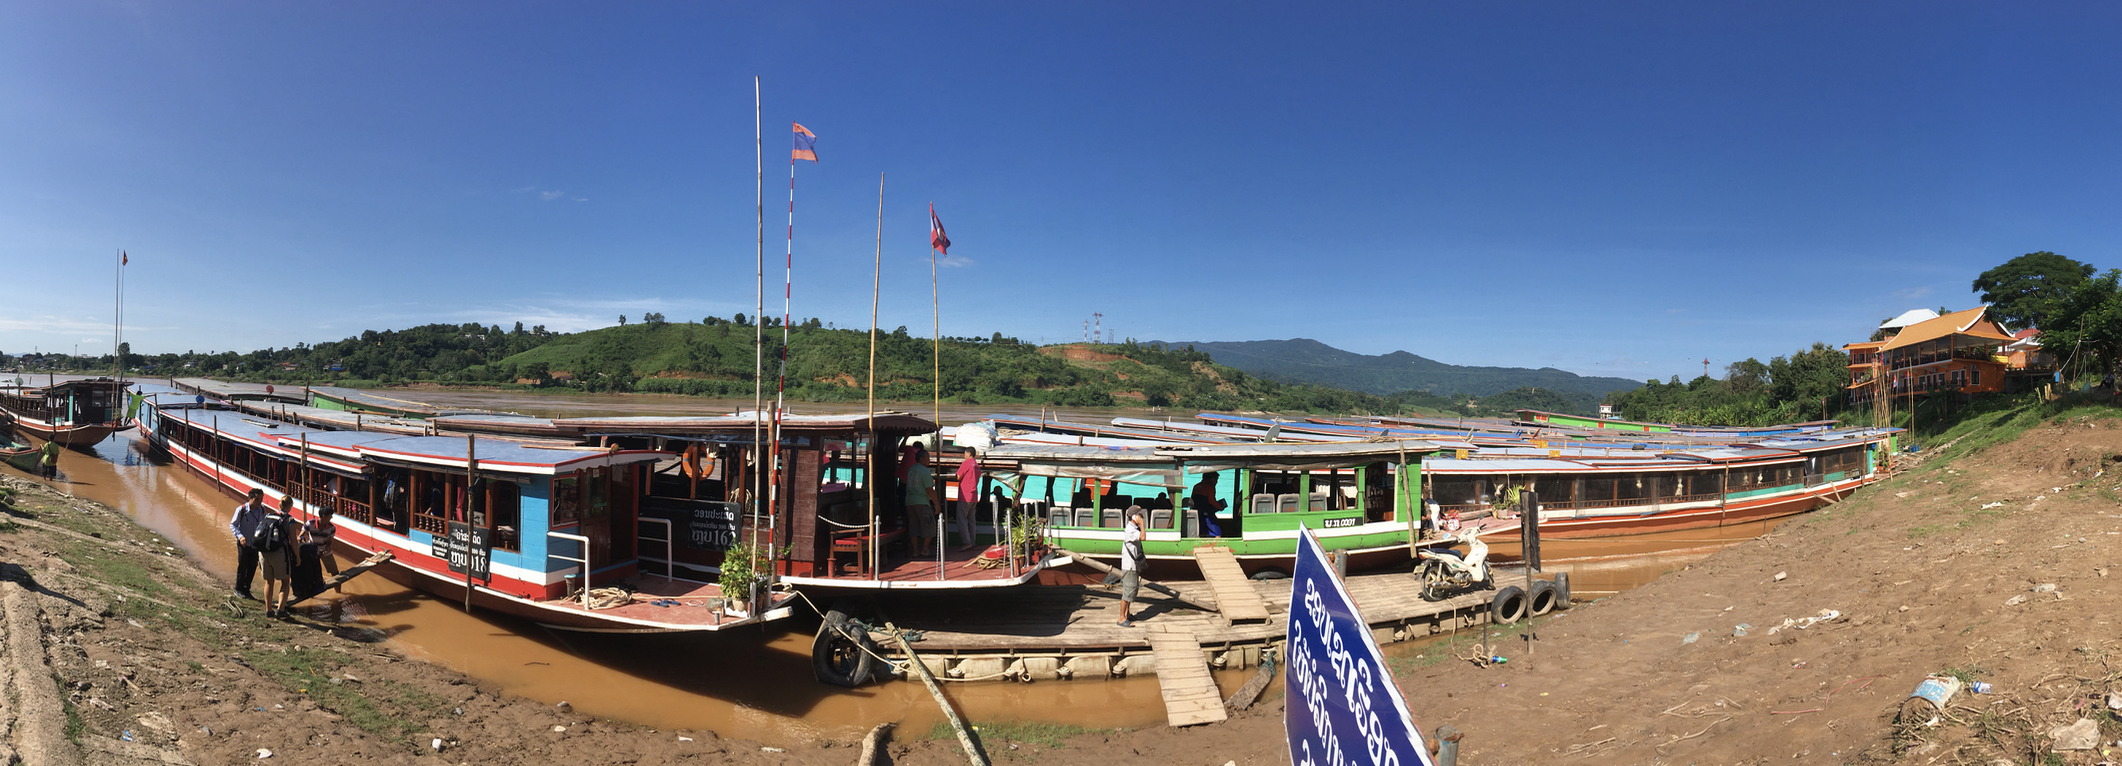 Boat rides and Buddhas in caves